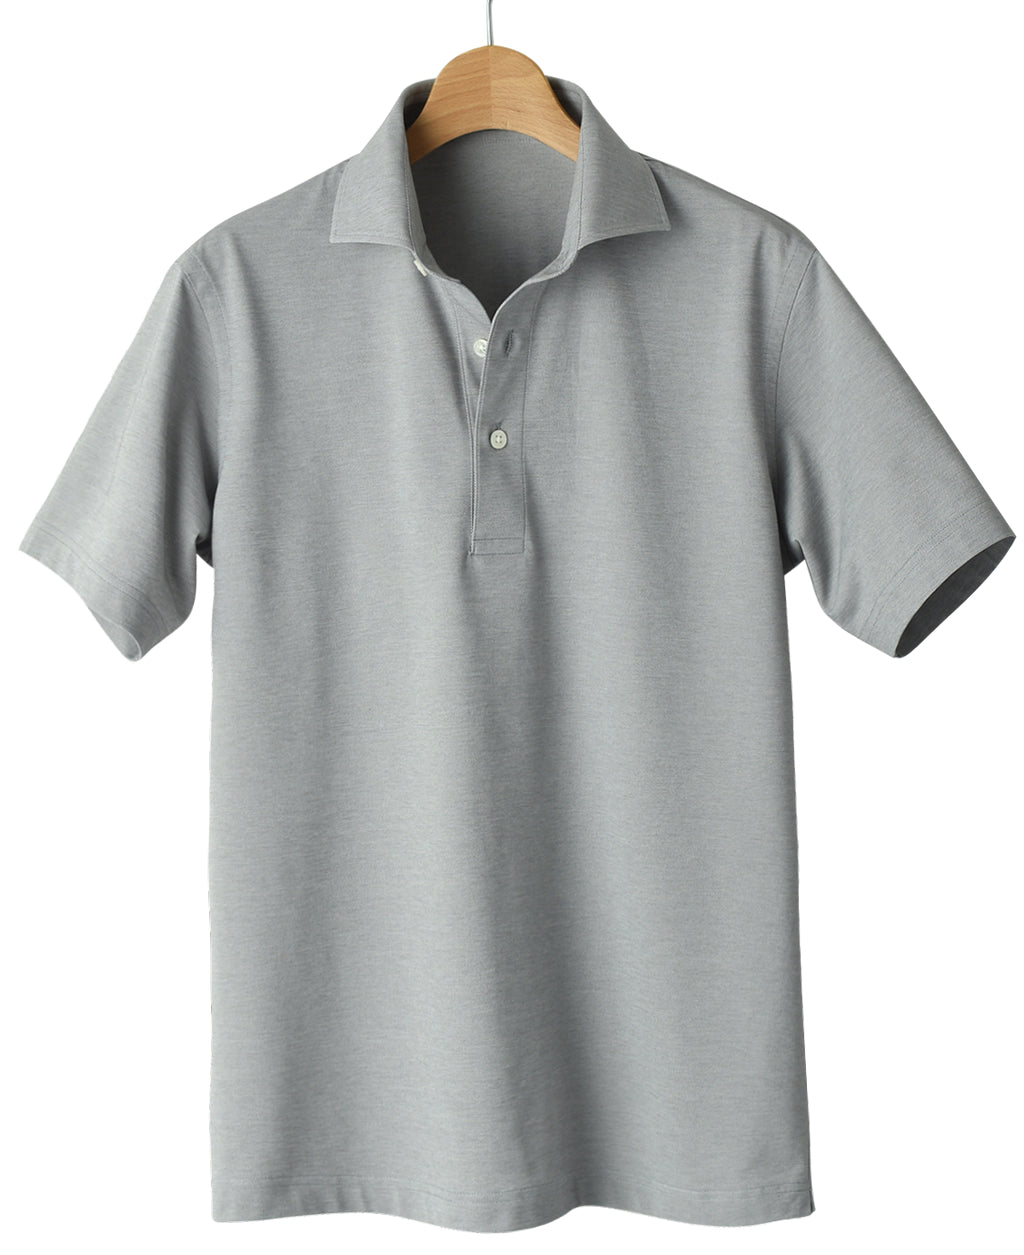 Gray cotton and polyester polo shirt